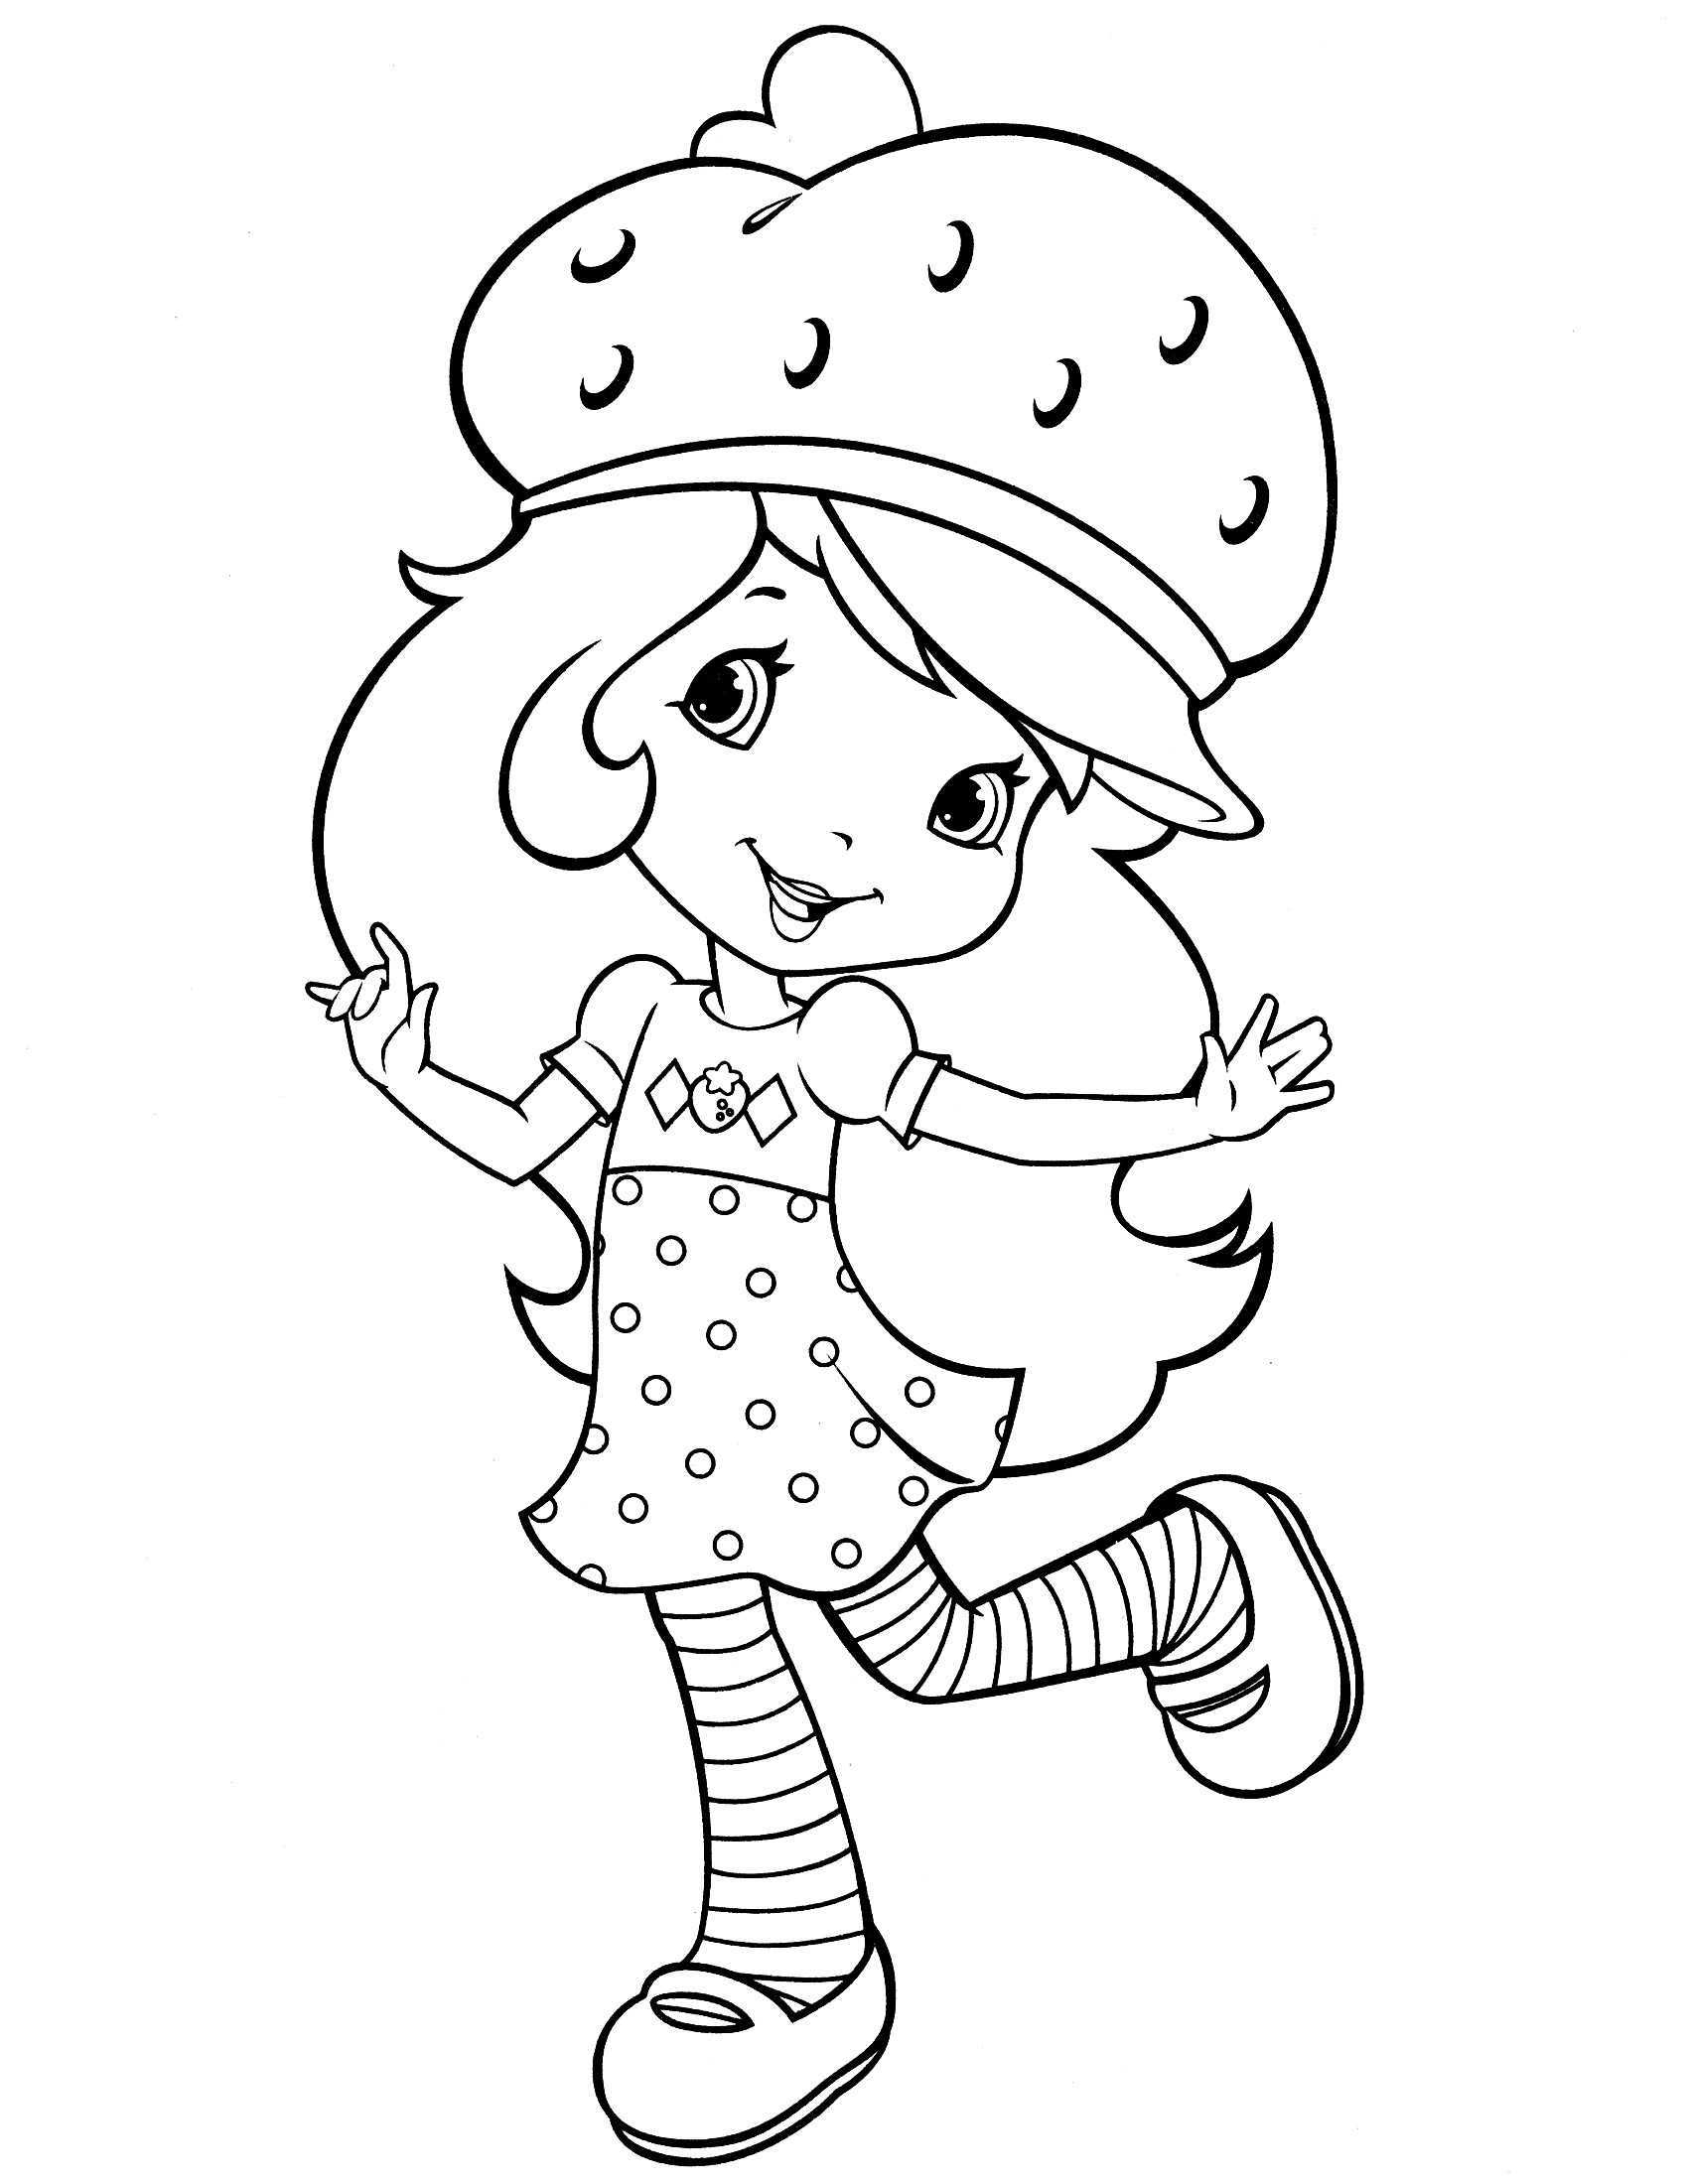 Coloring Sheets For Girls Strawberry Shortcake  Strawberry Shortcake Coloring Pages